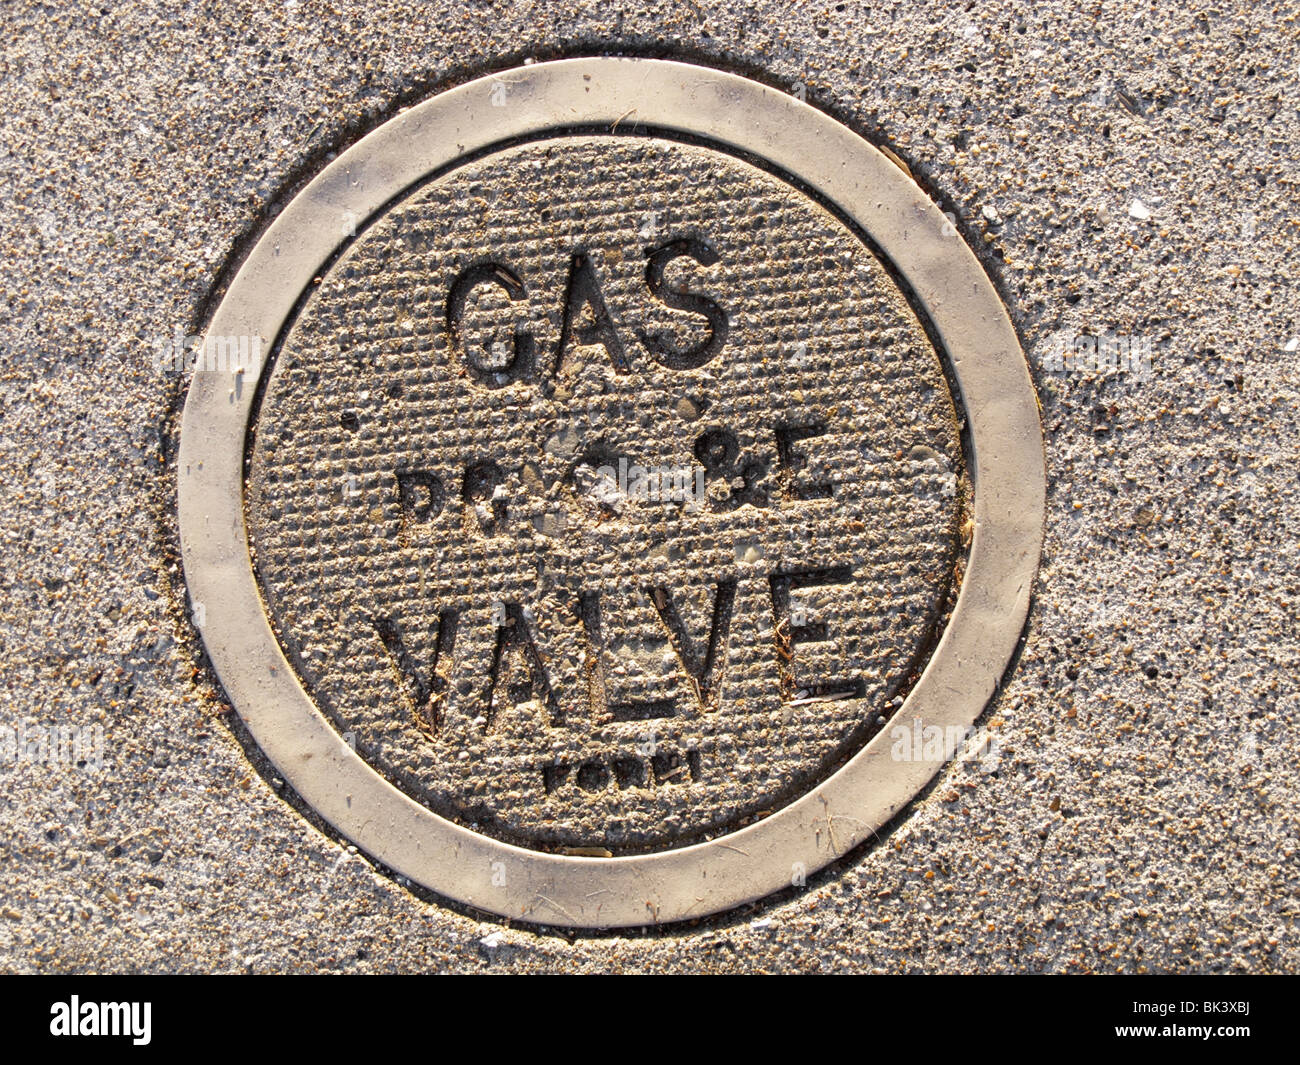 A gas valve lid at a walkway - Stock Image